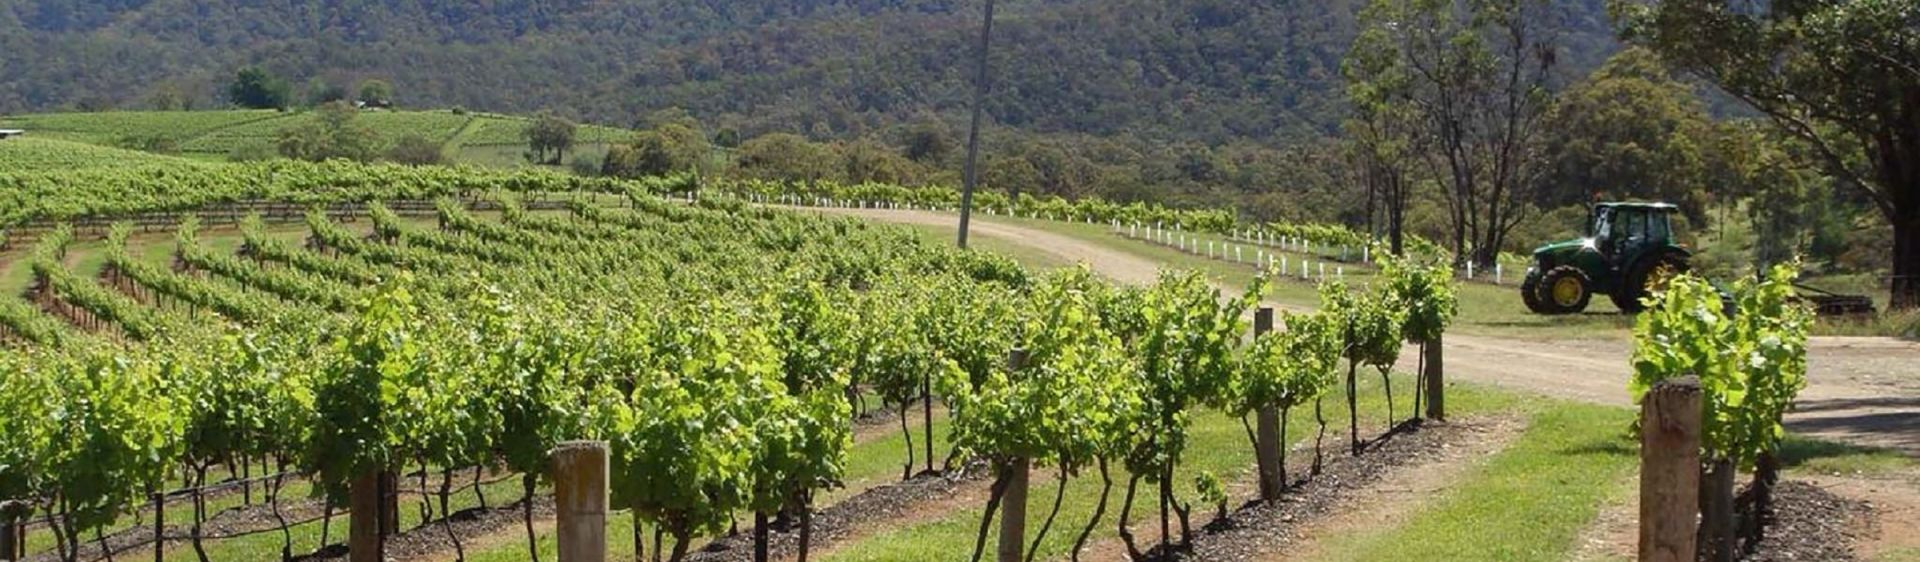 A vineyard in Wollombi, nestled in the beautiful Hunter region